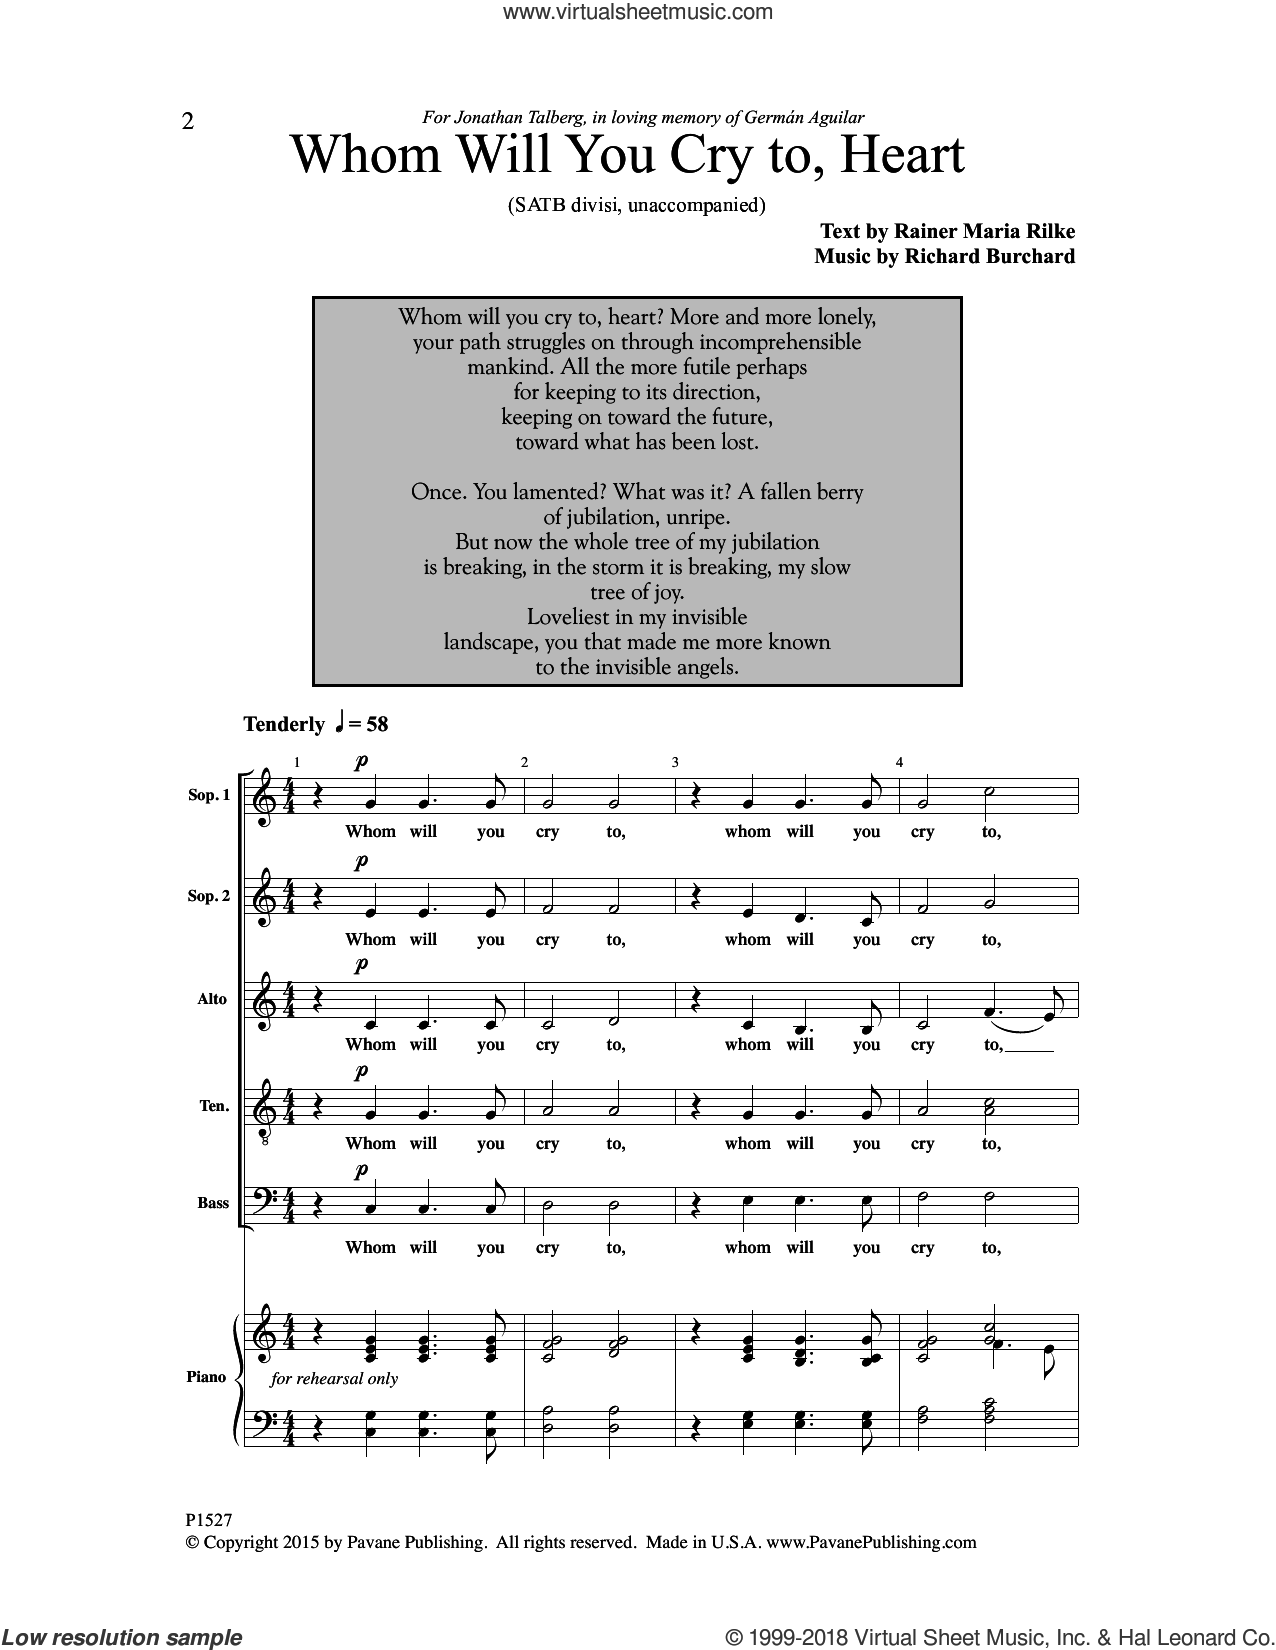 Whom Will You Cry To, Heart? sheet music for choir by Rainer Maria Rilke and Richard Burchard, intermediate skill level